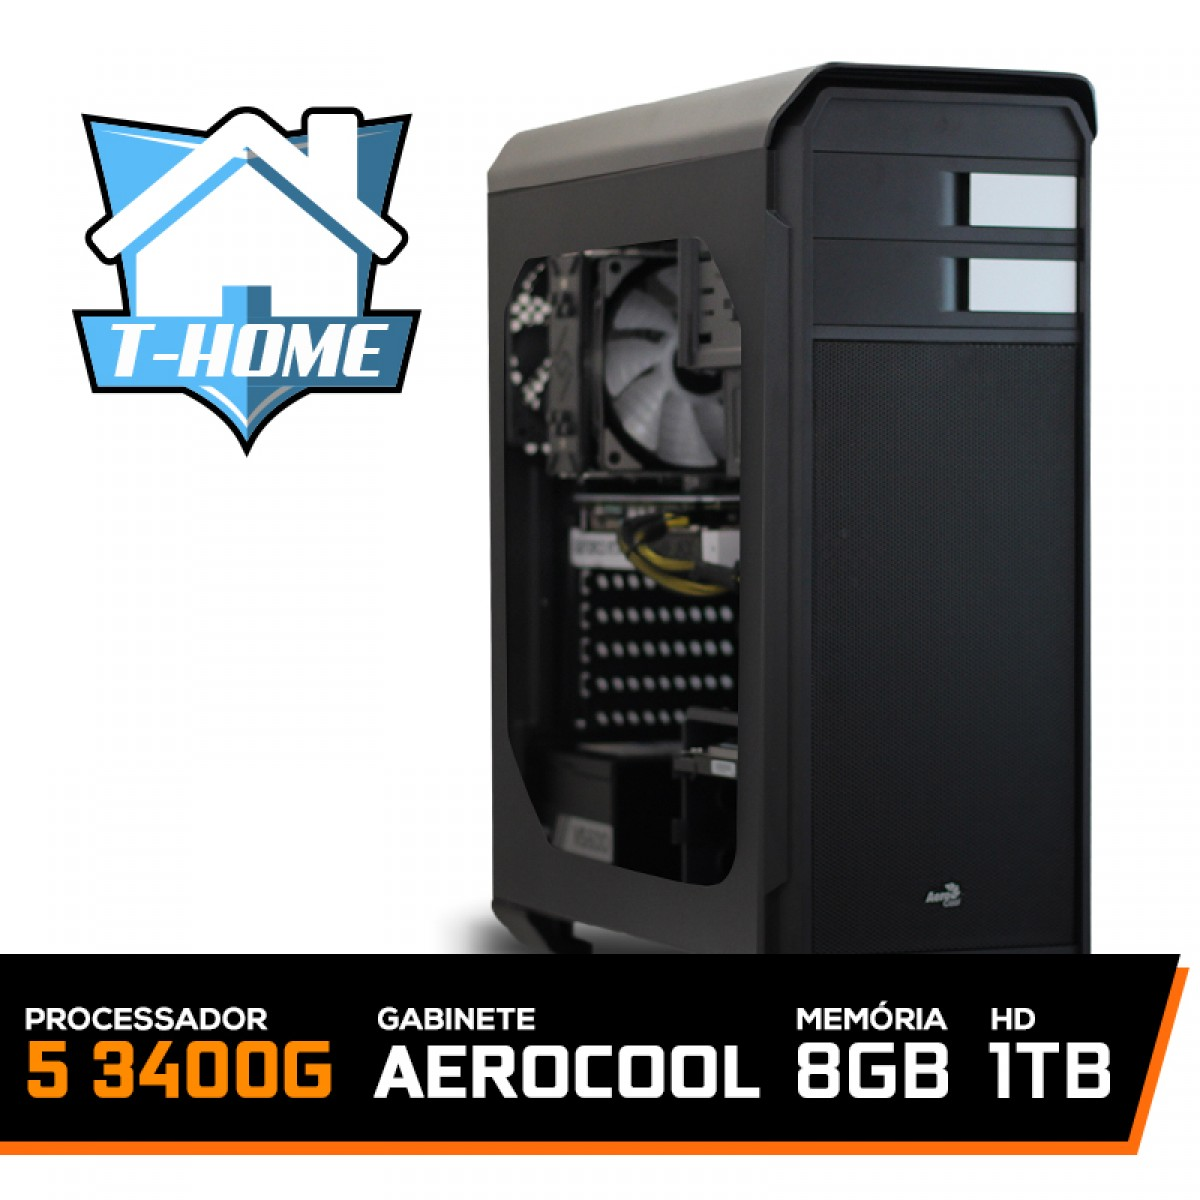 Computador T-home Ryzen 5 3400G / 8Gb DDR4 / HD 1TB